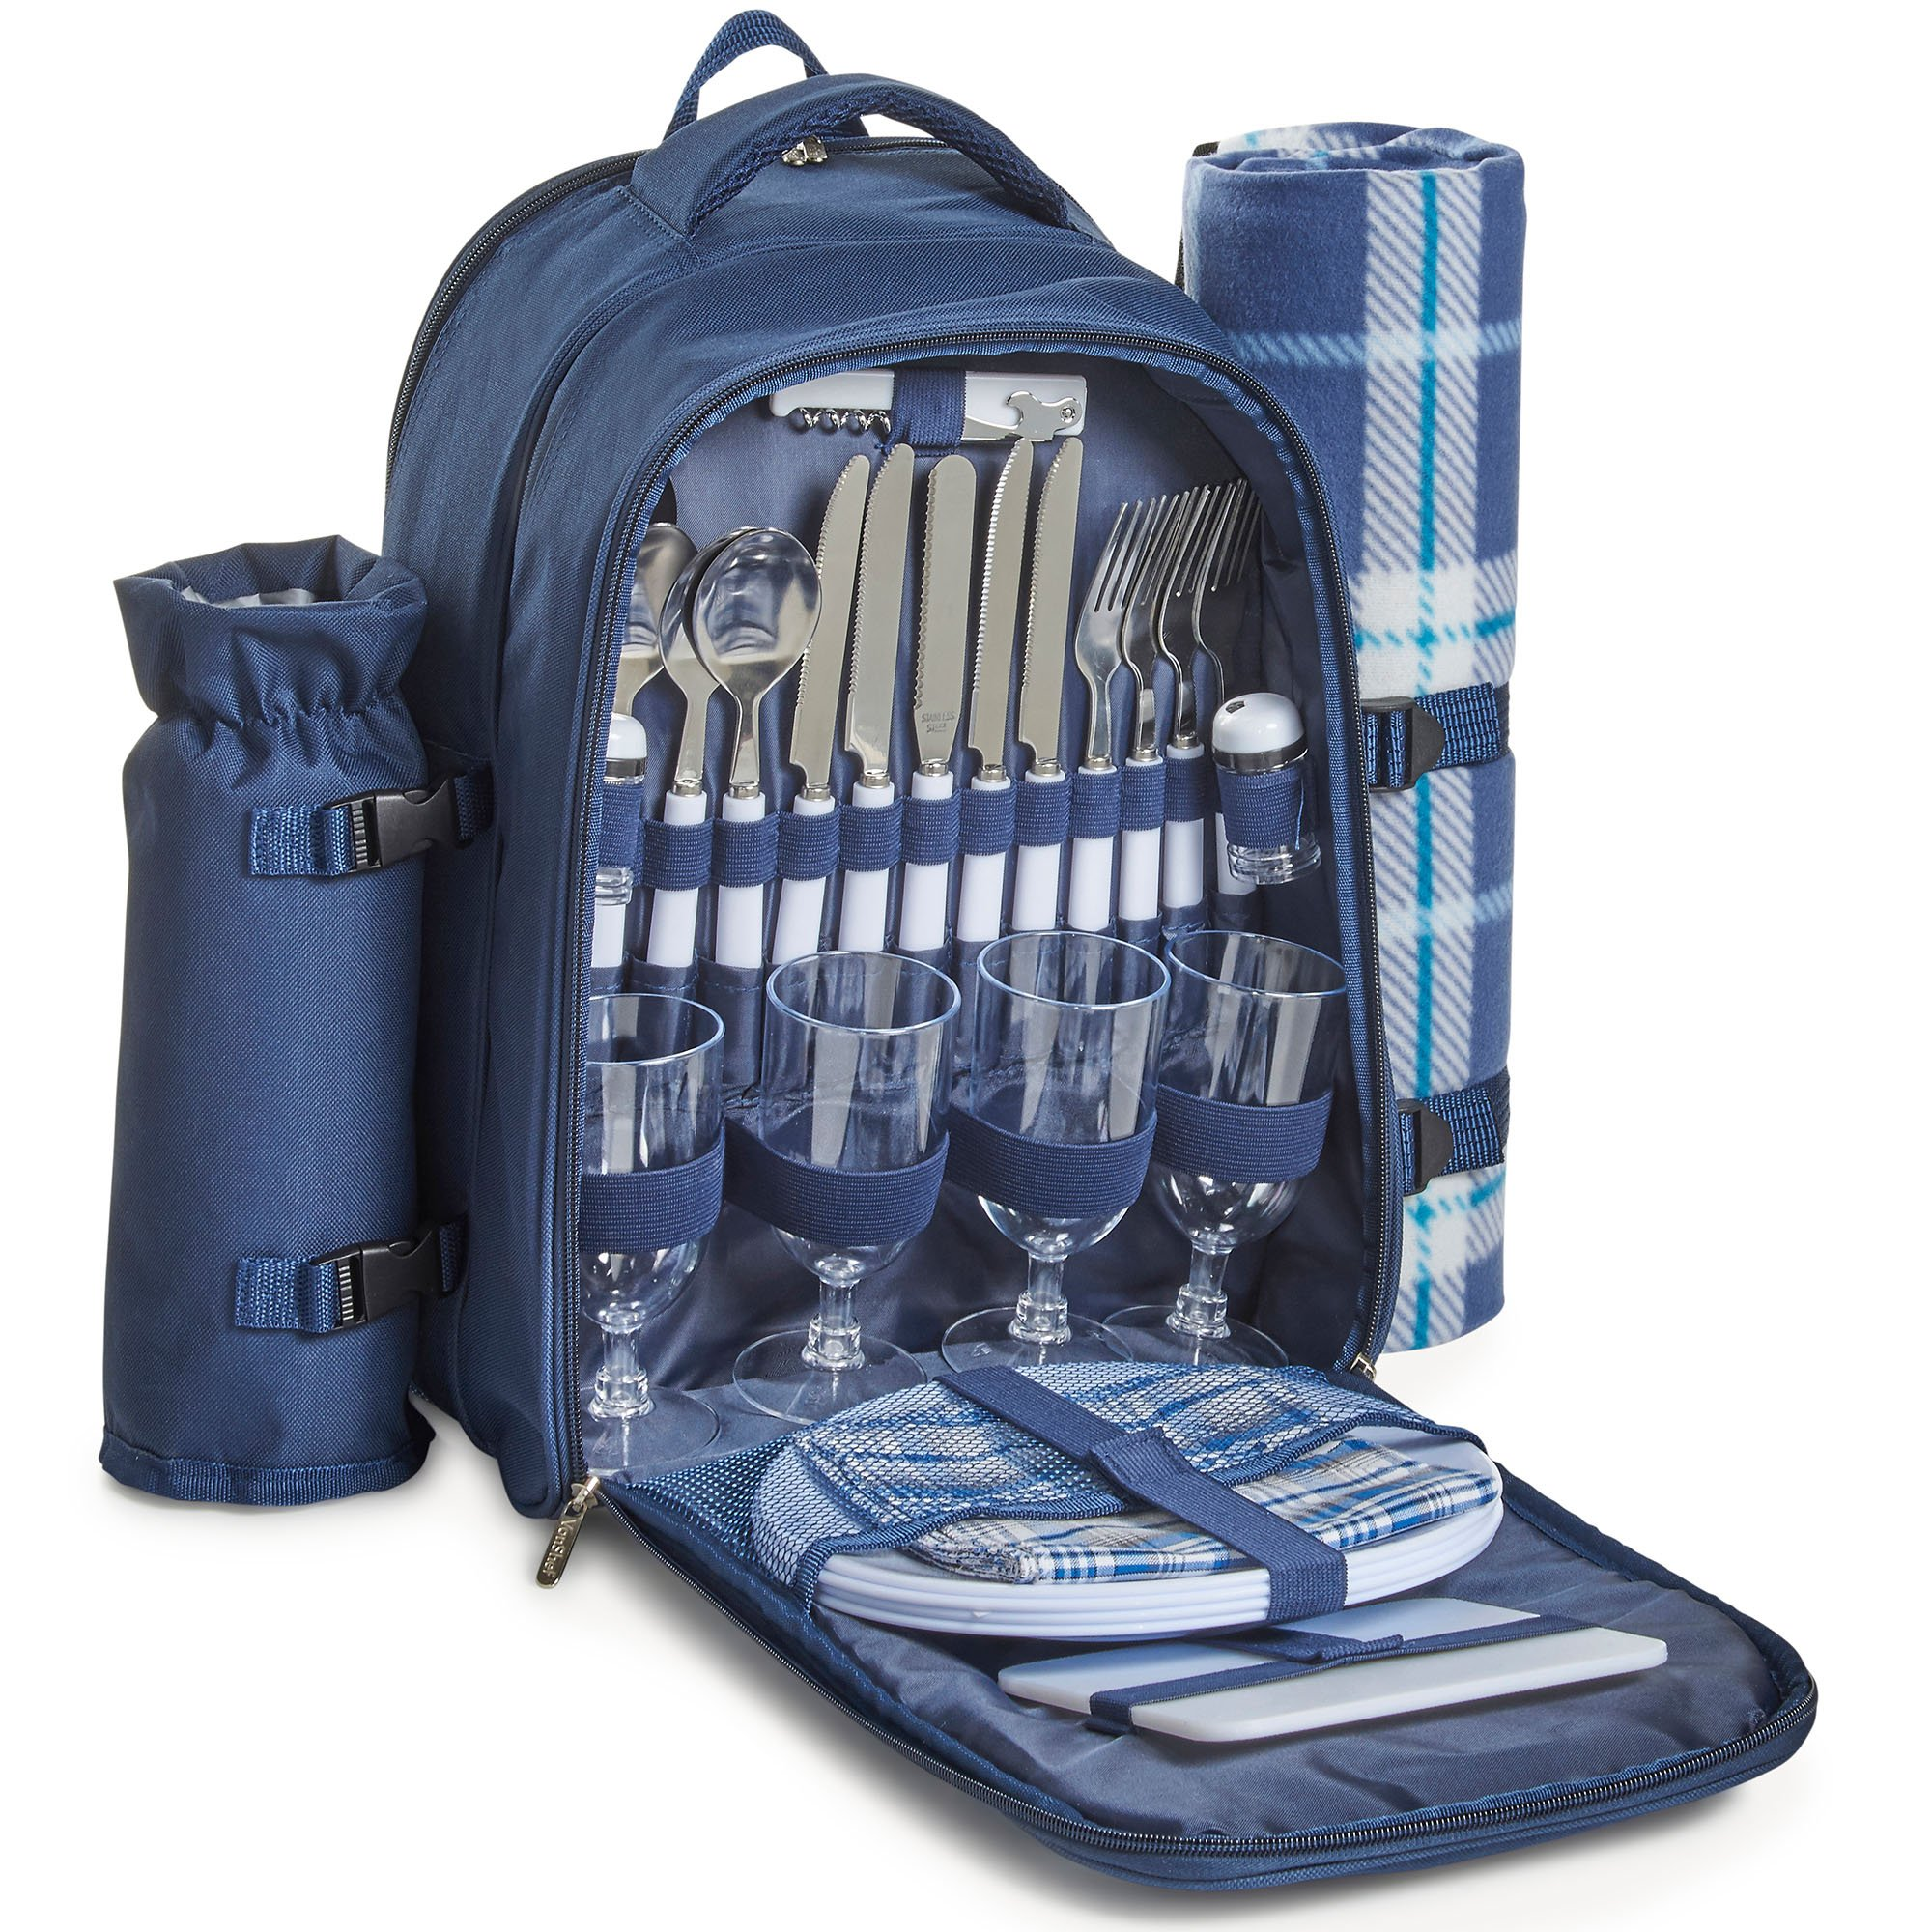 VonShef Outdoor Backpack Insulated Compartment